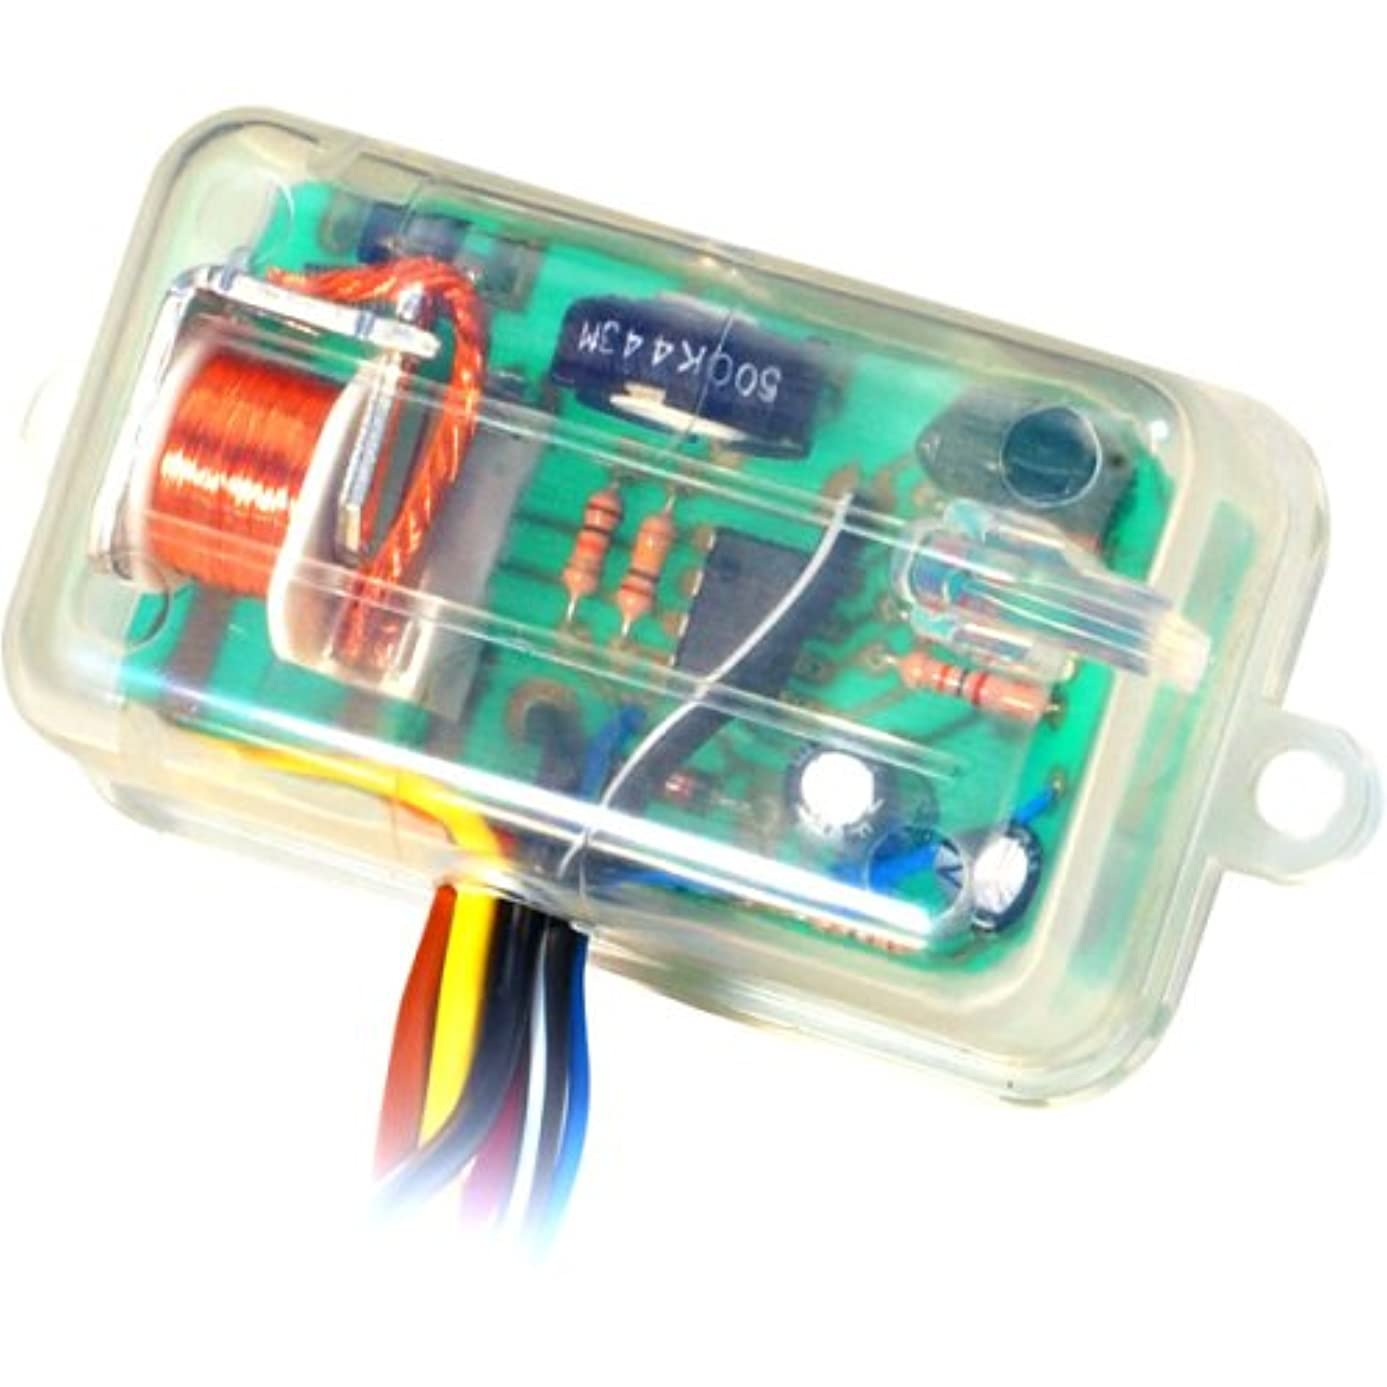 Directed Electronics Inc 528T 12v Accessory Pulse Timer